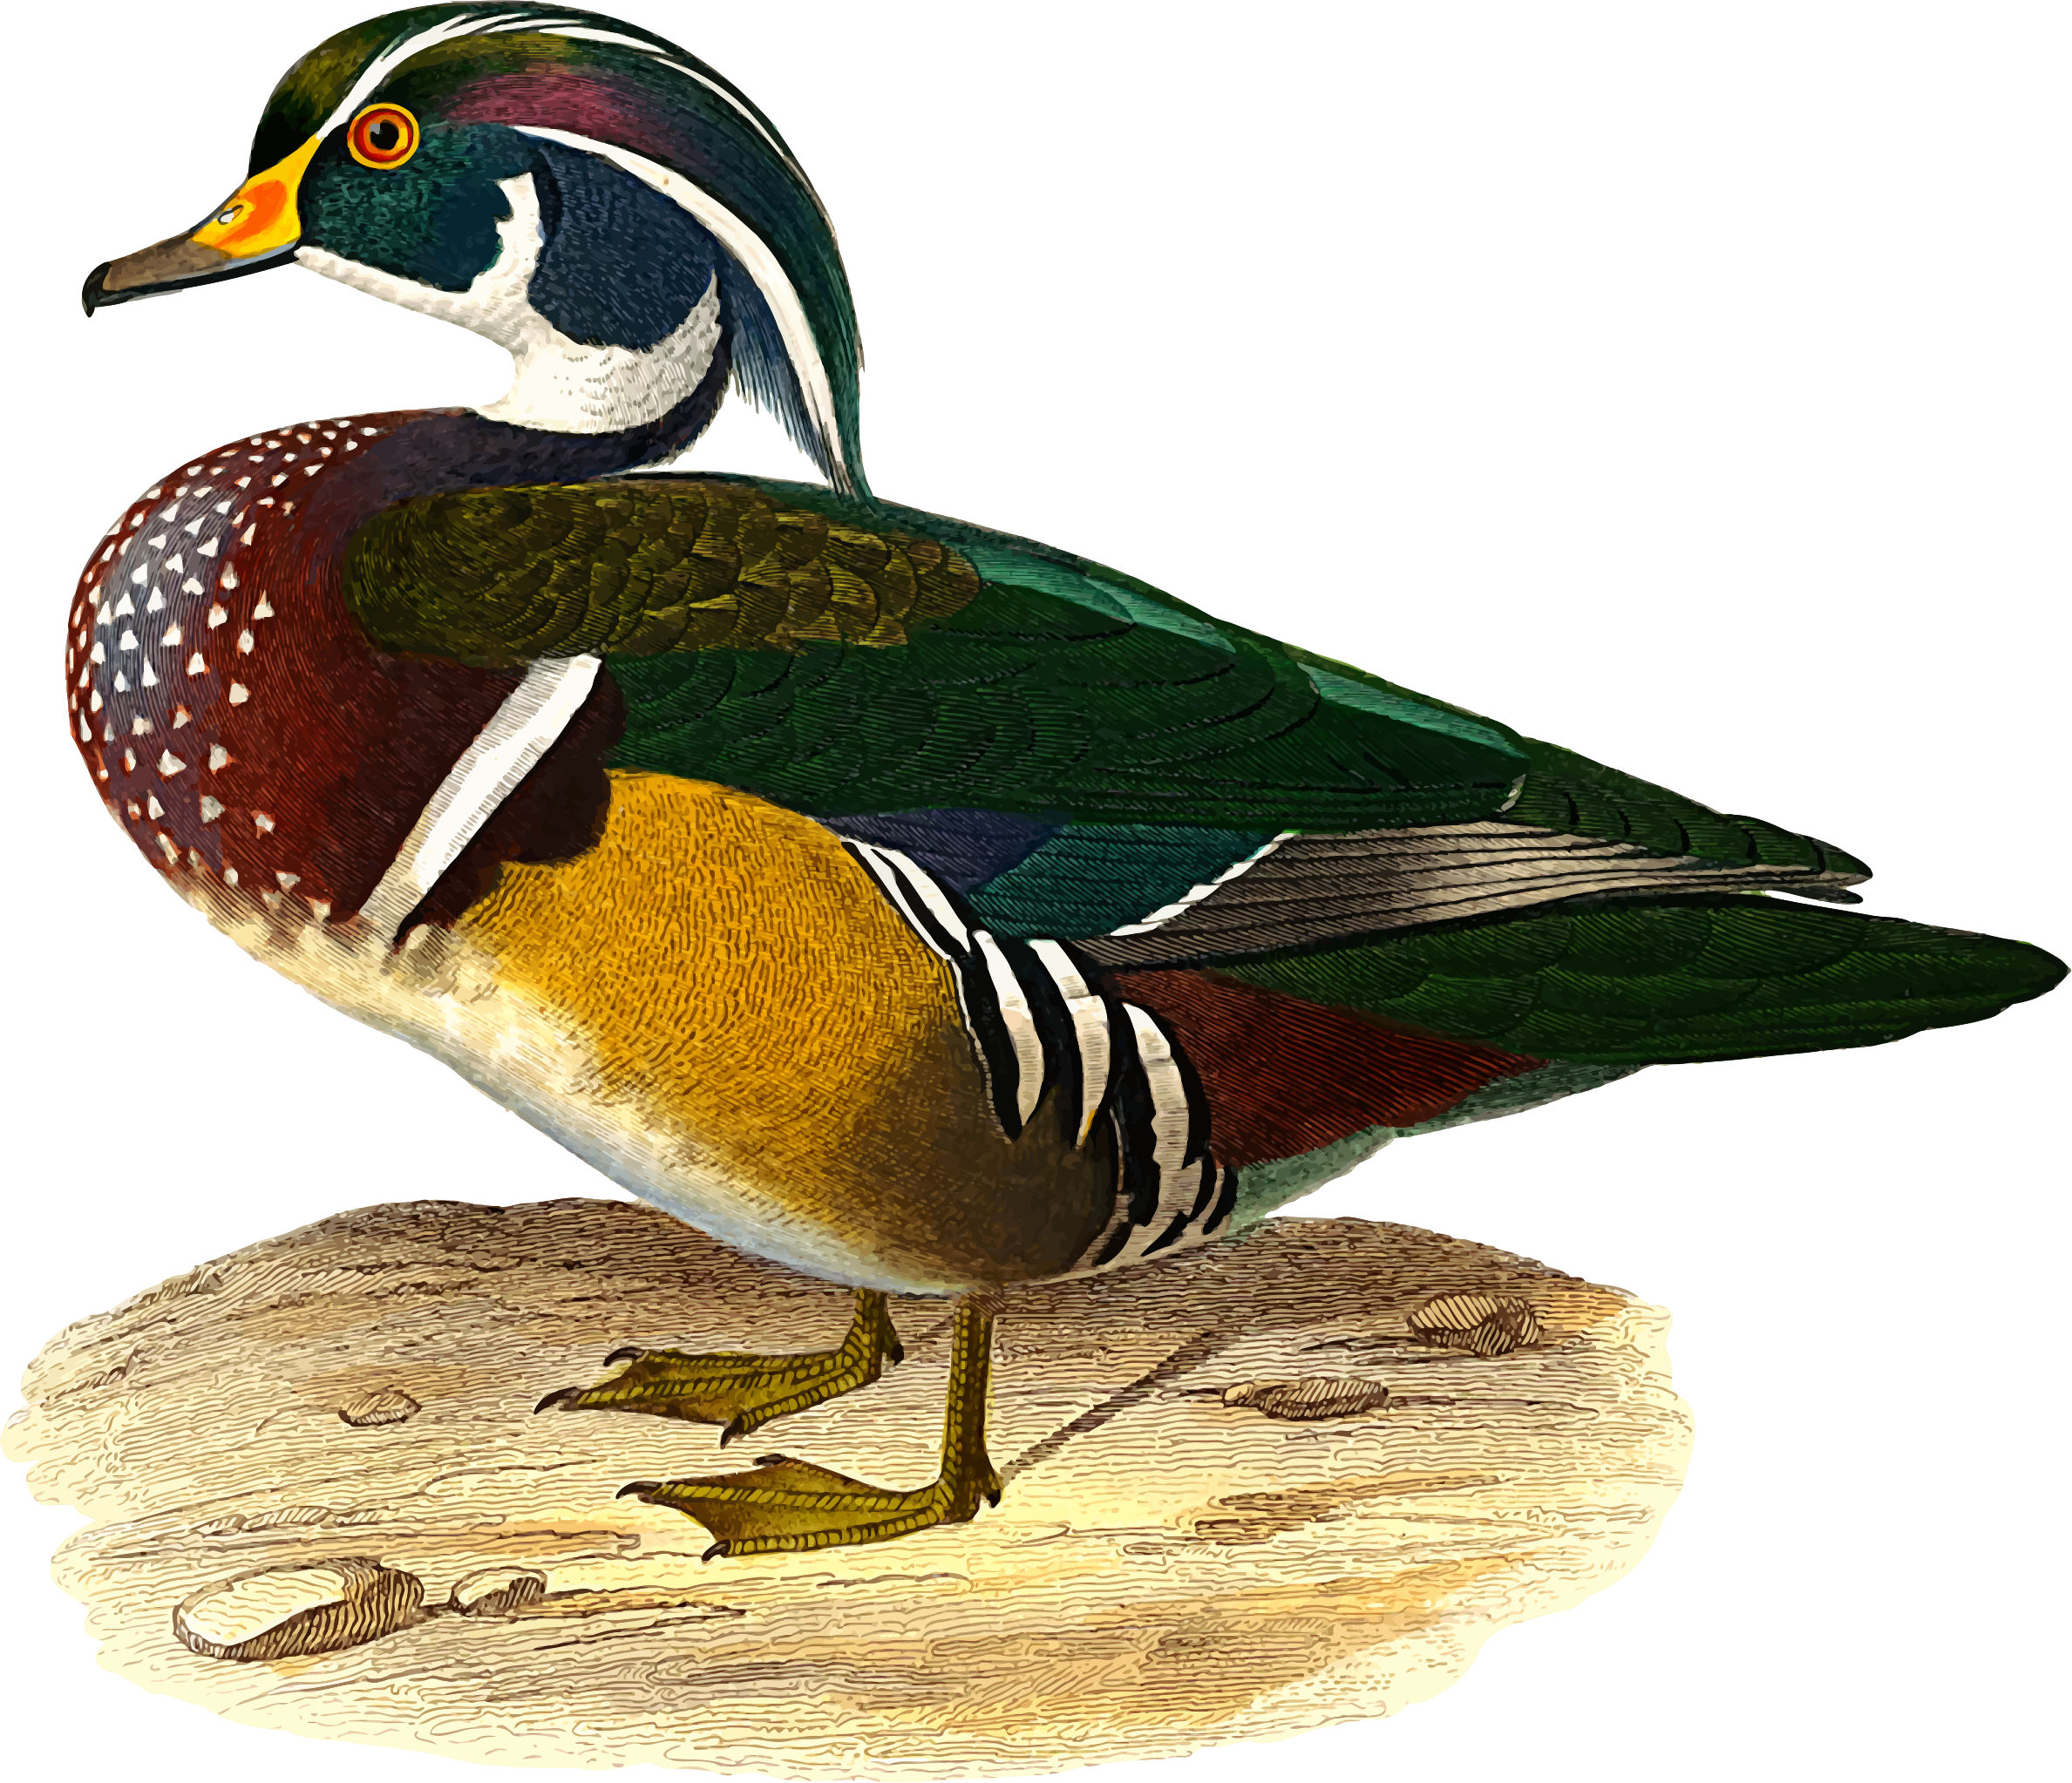 Wood duck by Firkin